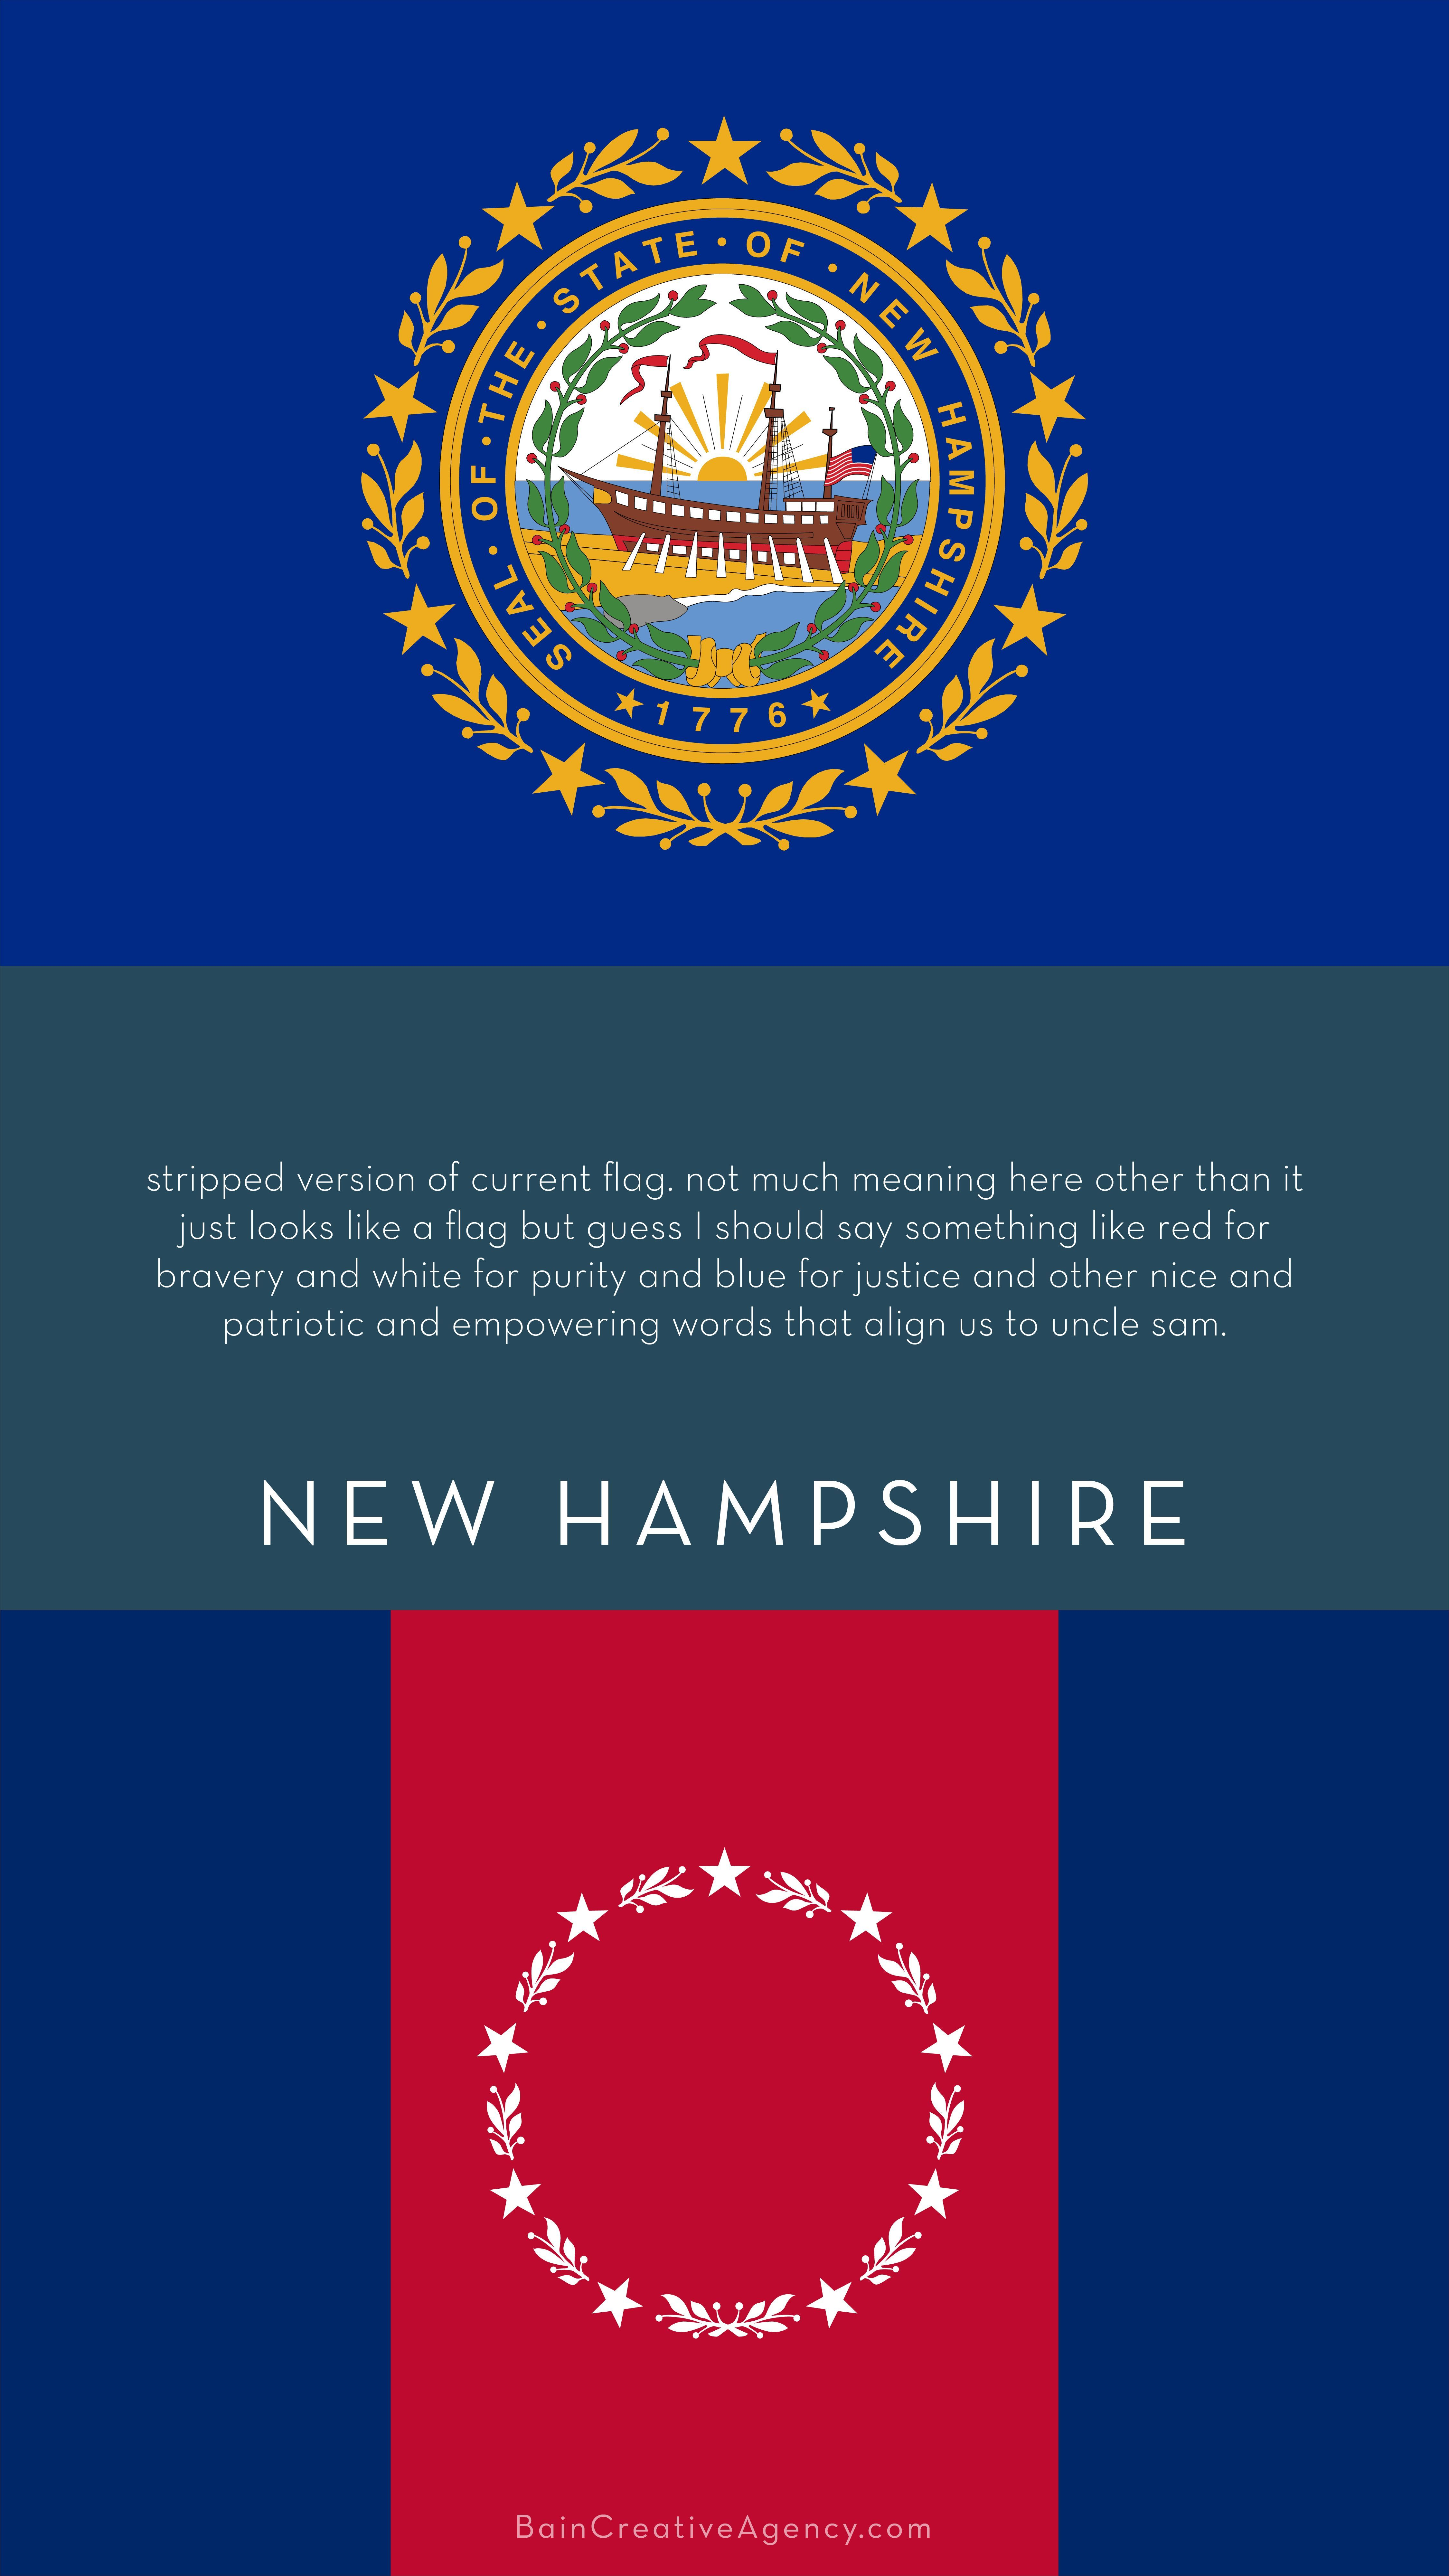 New Hampshire Flag Redesign In 2020 Empowering Words Bravery State Flags